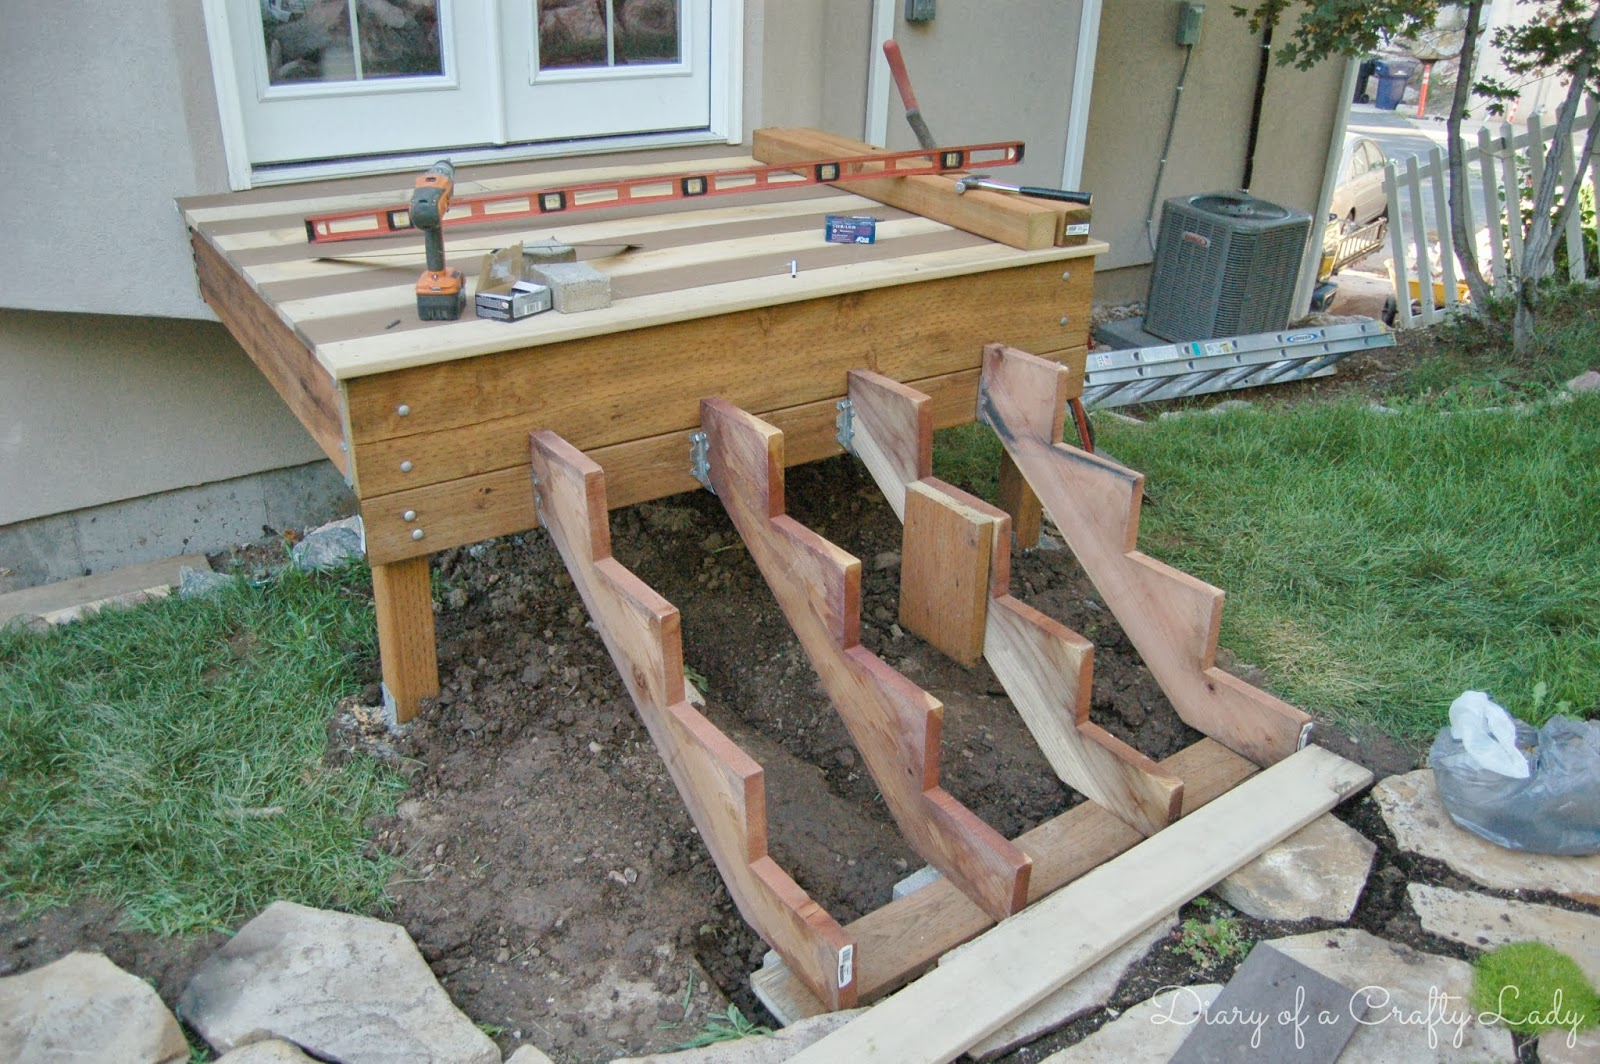 Diary Of A Crafty Lady Building A Deck A Power Tool Project   Making Steps For Decking